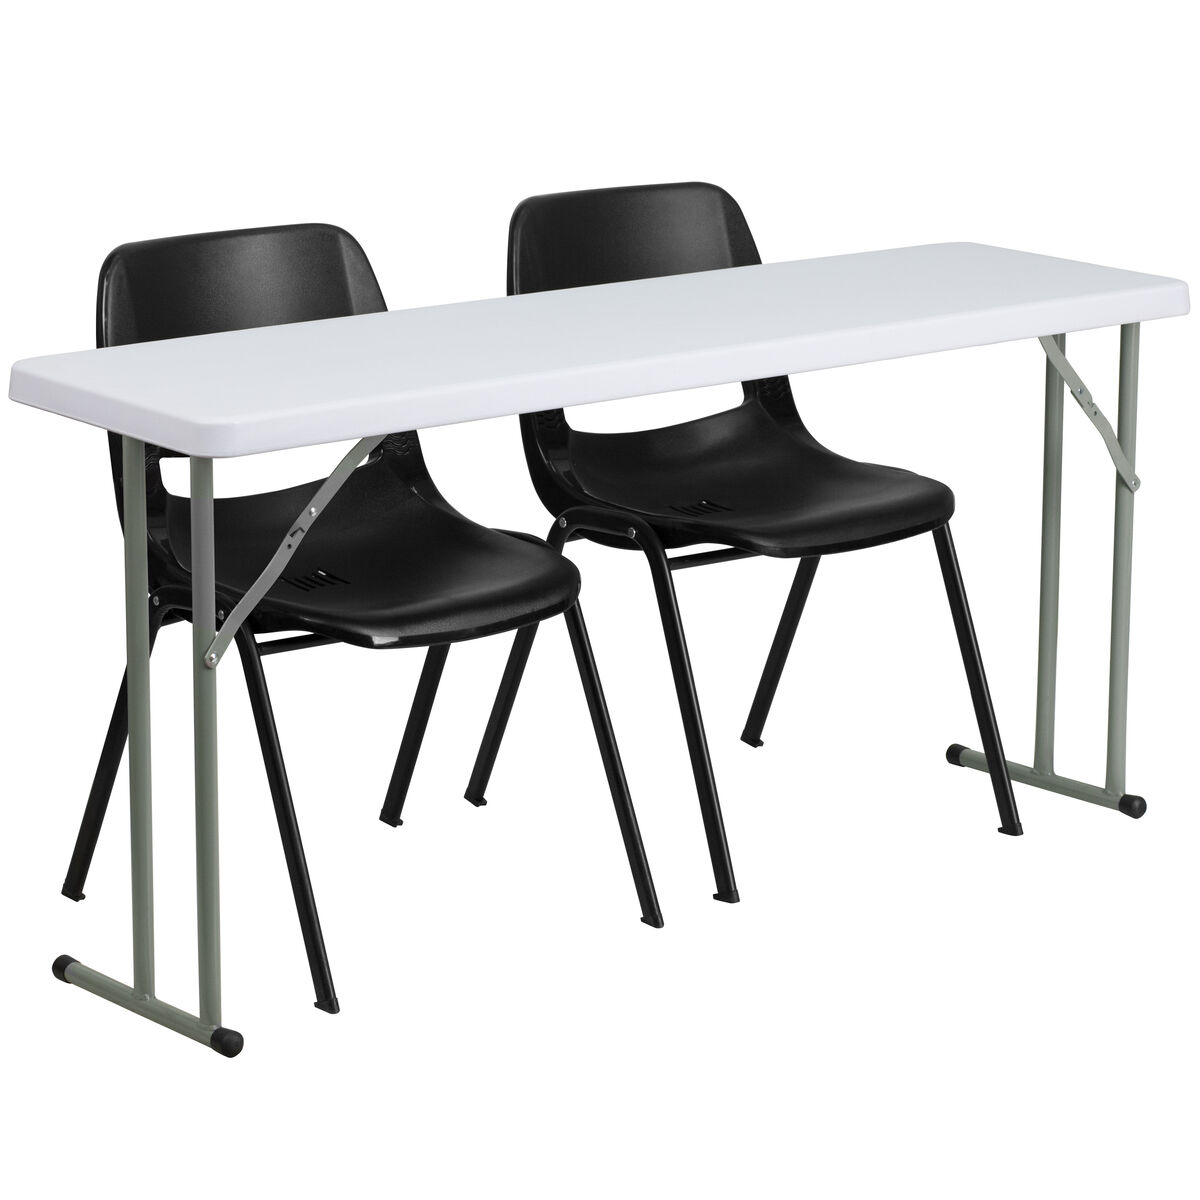 18x60 table set stack chairs rb 1860 2 gg foldingchairs4less com